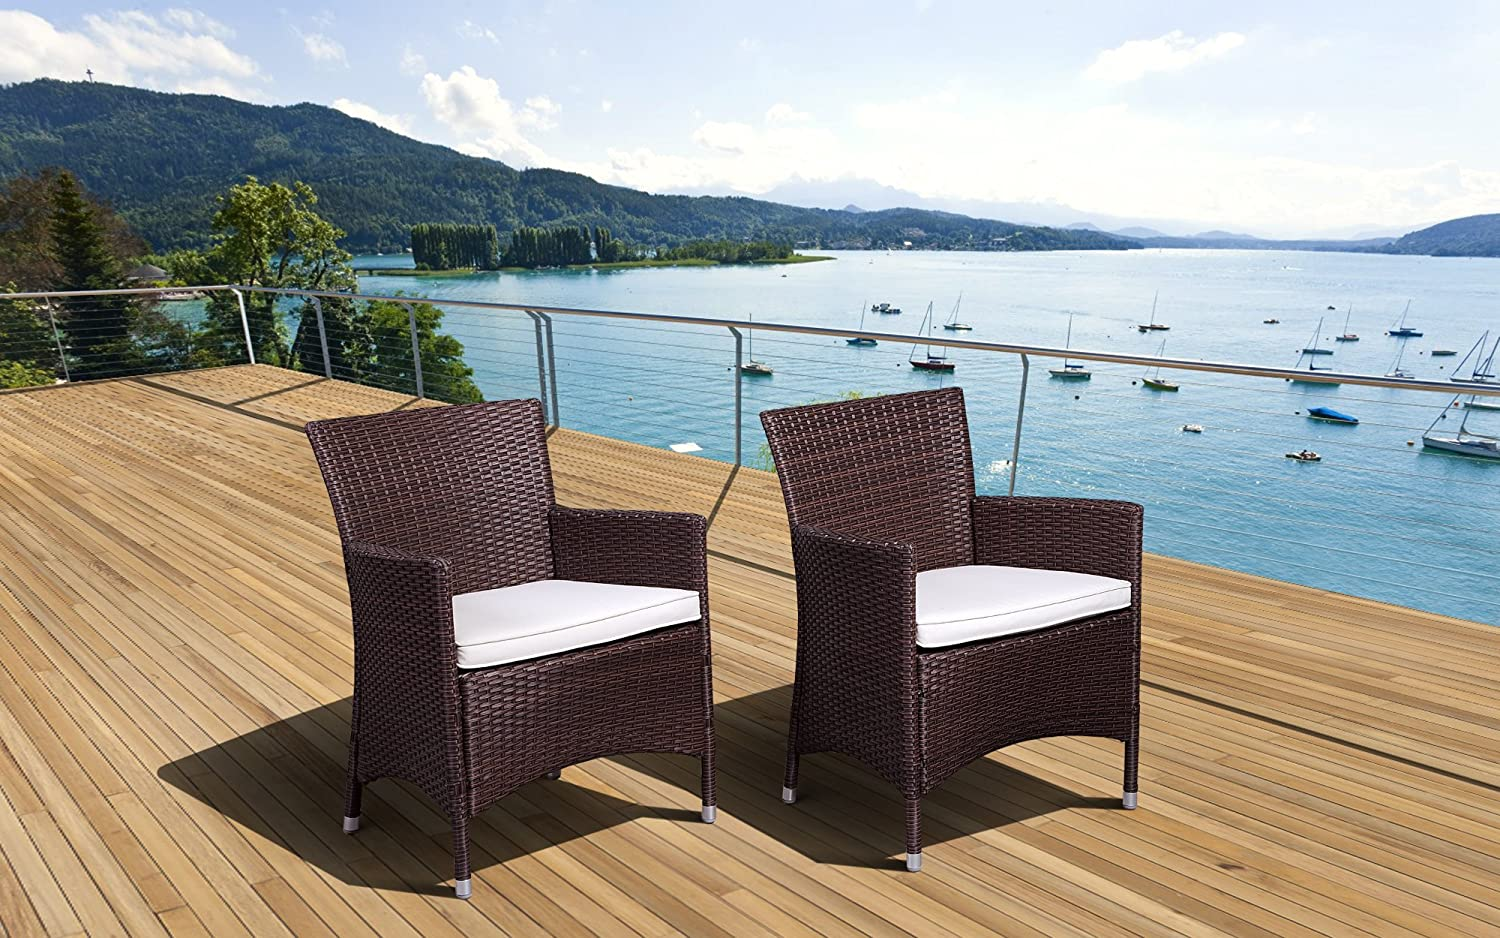 Amazon.com : Atlantic Liberty Deluxe Wicker Armchair, Brown, Set Of 2 :  Patio Dining Chairs : Garden U0026 Outdoor